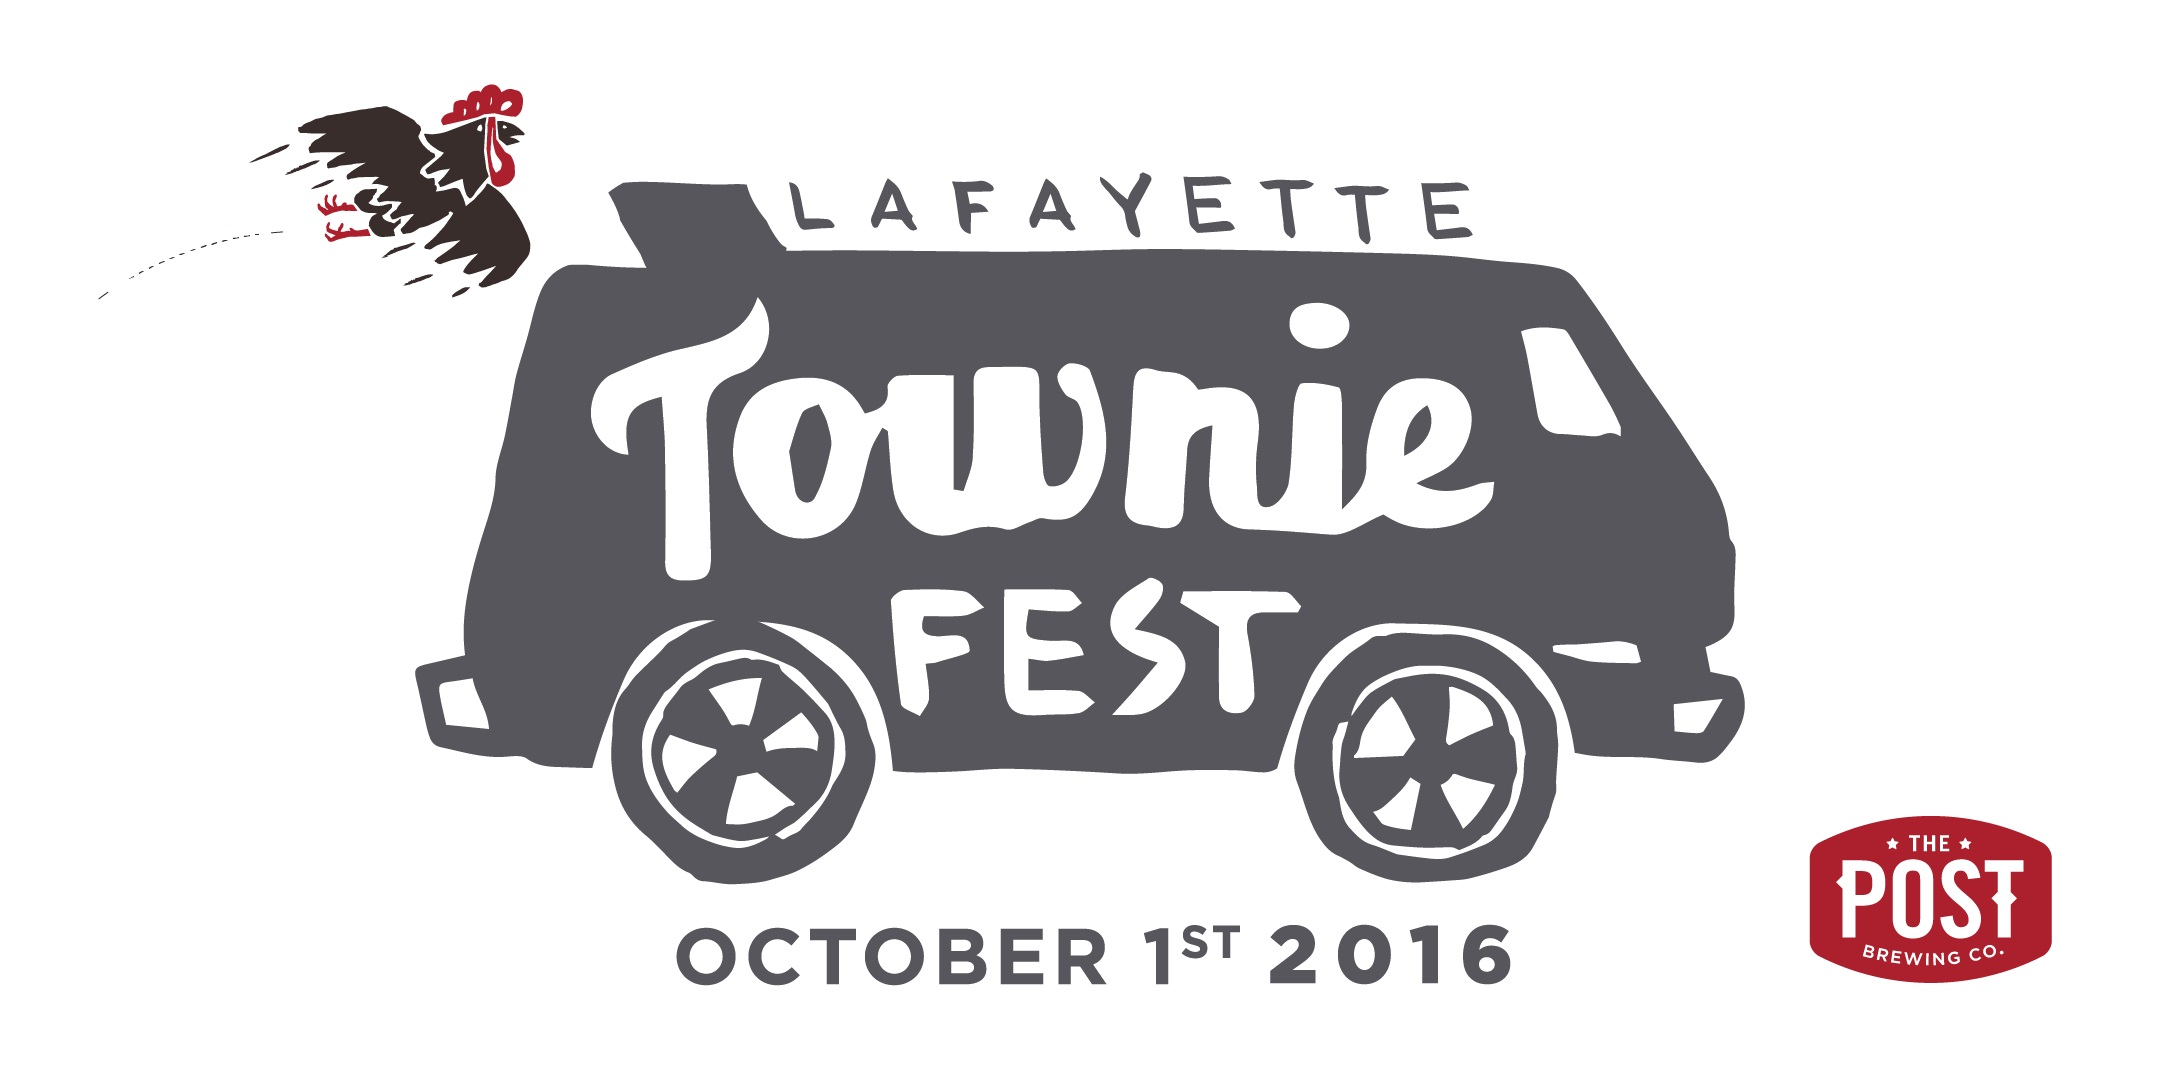 POST_Townie Fest 2016_FB Event